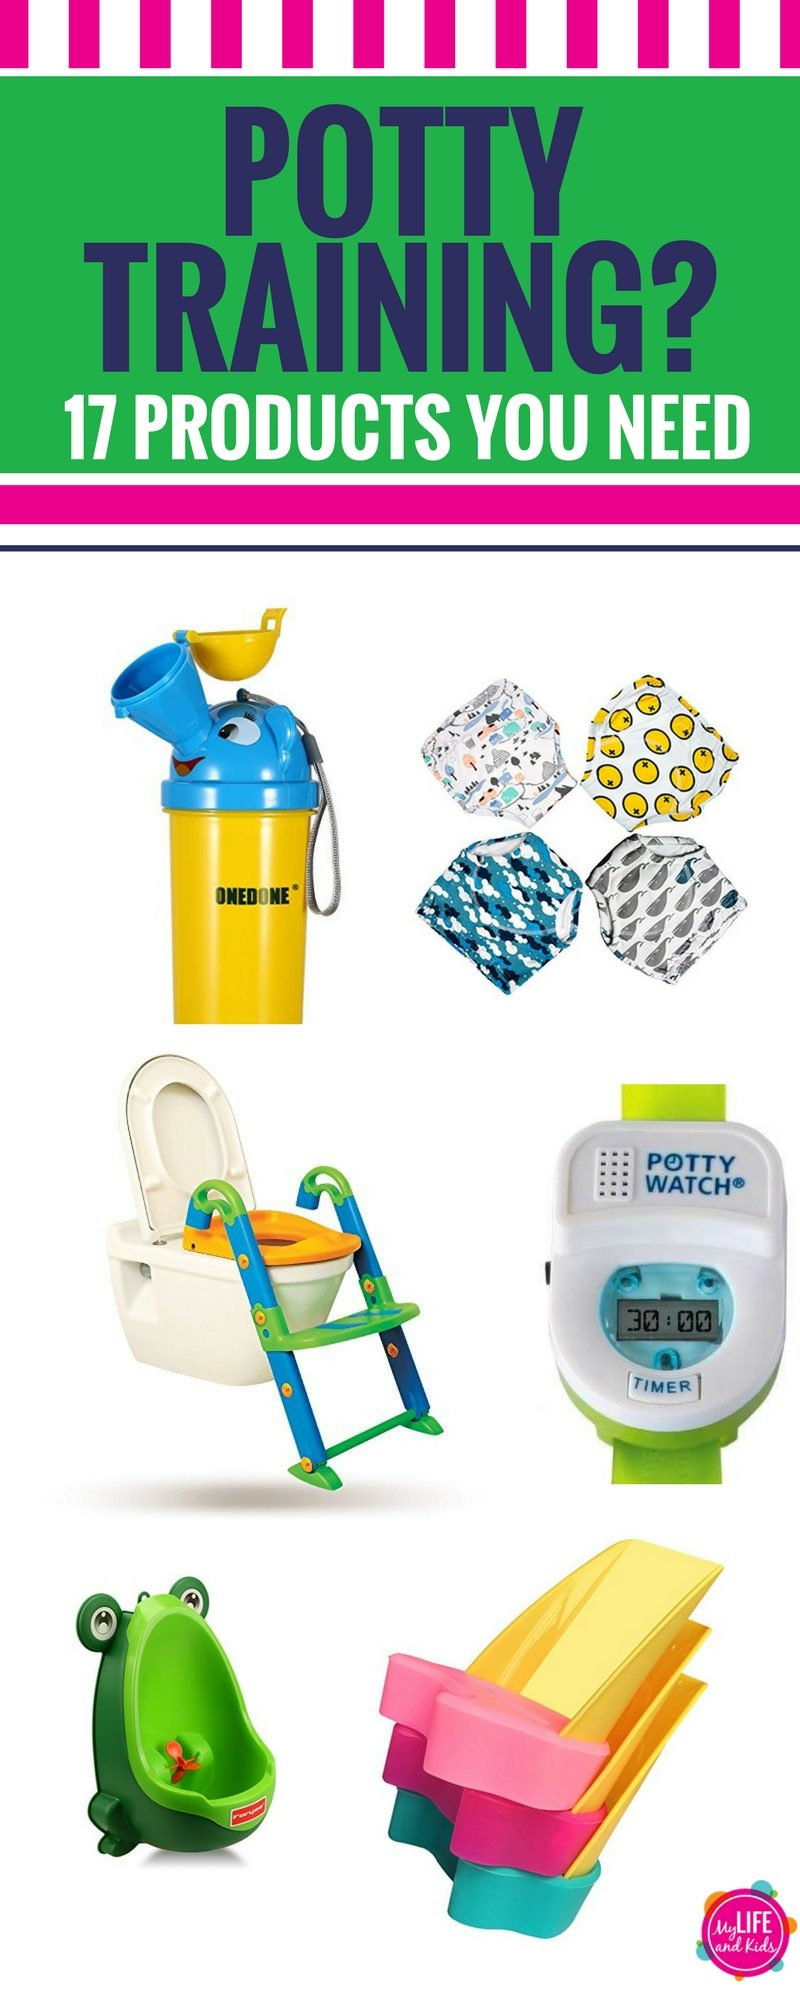 Are you thinking about potty training, or are you already in the middle of it? Whether you're potty training a girl or a boy, an 18 month old, a two year old or a preschooler, these must-buy potty training items will have your child potty trained in no time! From practical to unique to downright fun, these potty training items will have even the most stubborn child excited to use the potty.